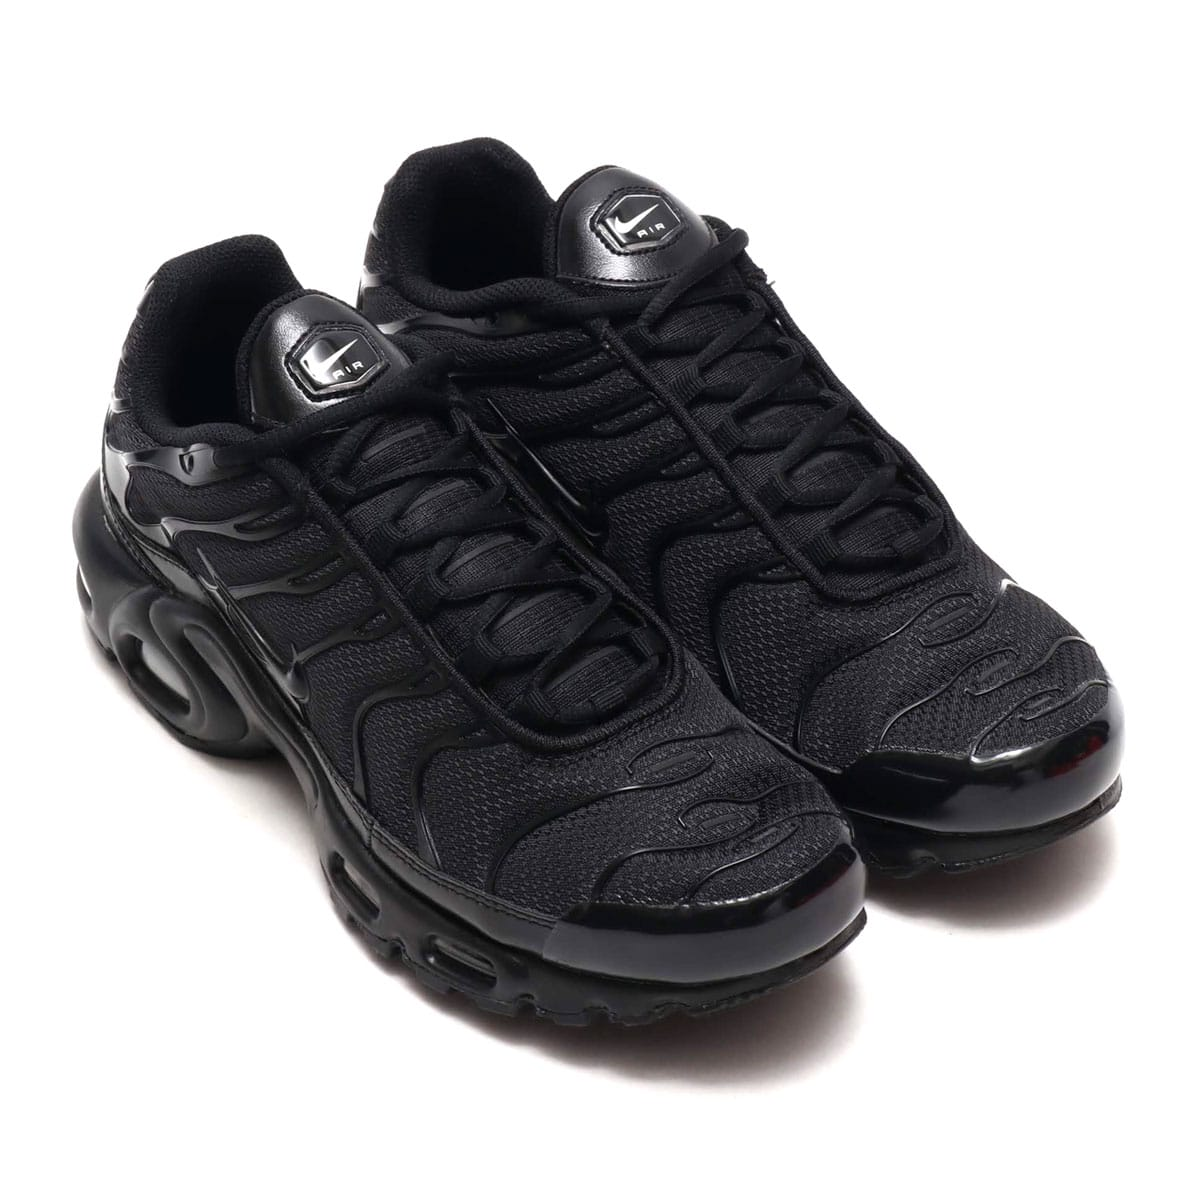 NIKE AIR MAX PLUS BLACK/BLACK-BLACK 19HO-I_photo_large